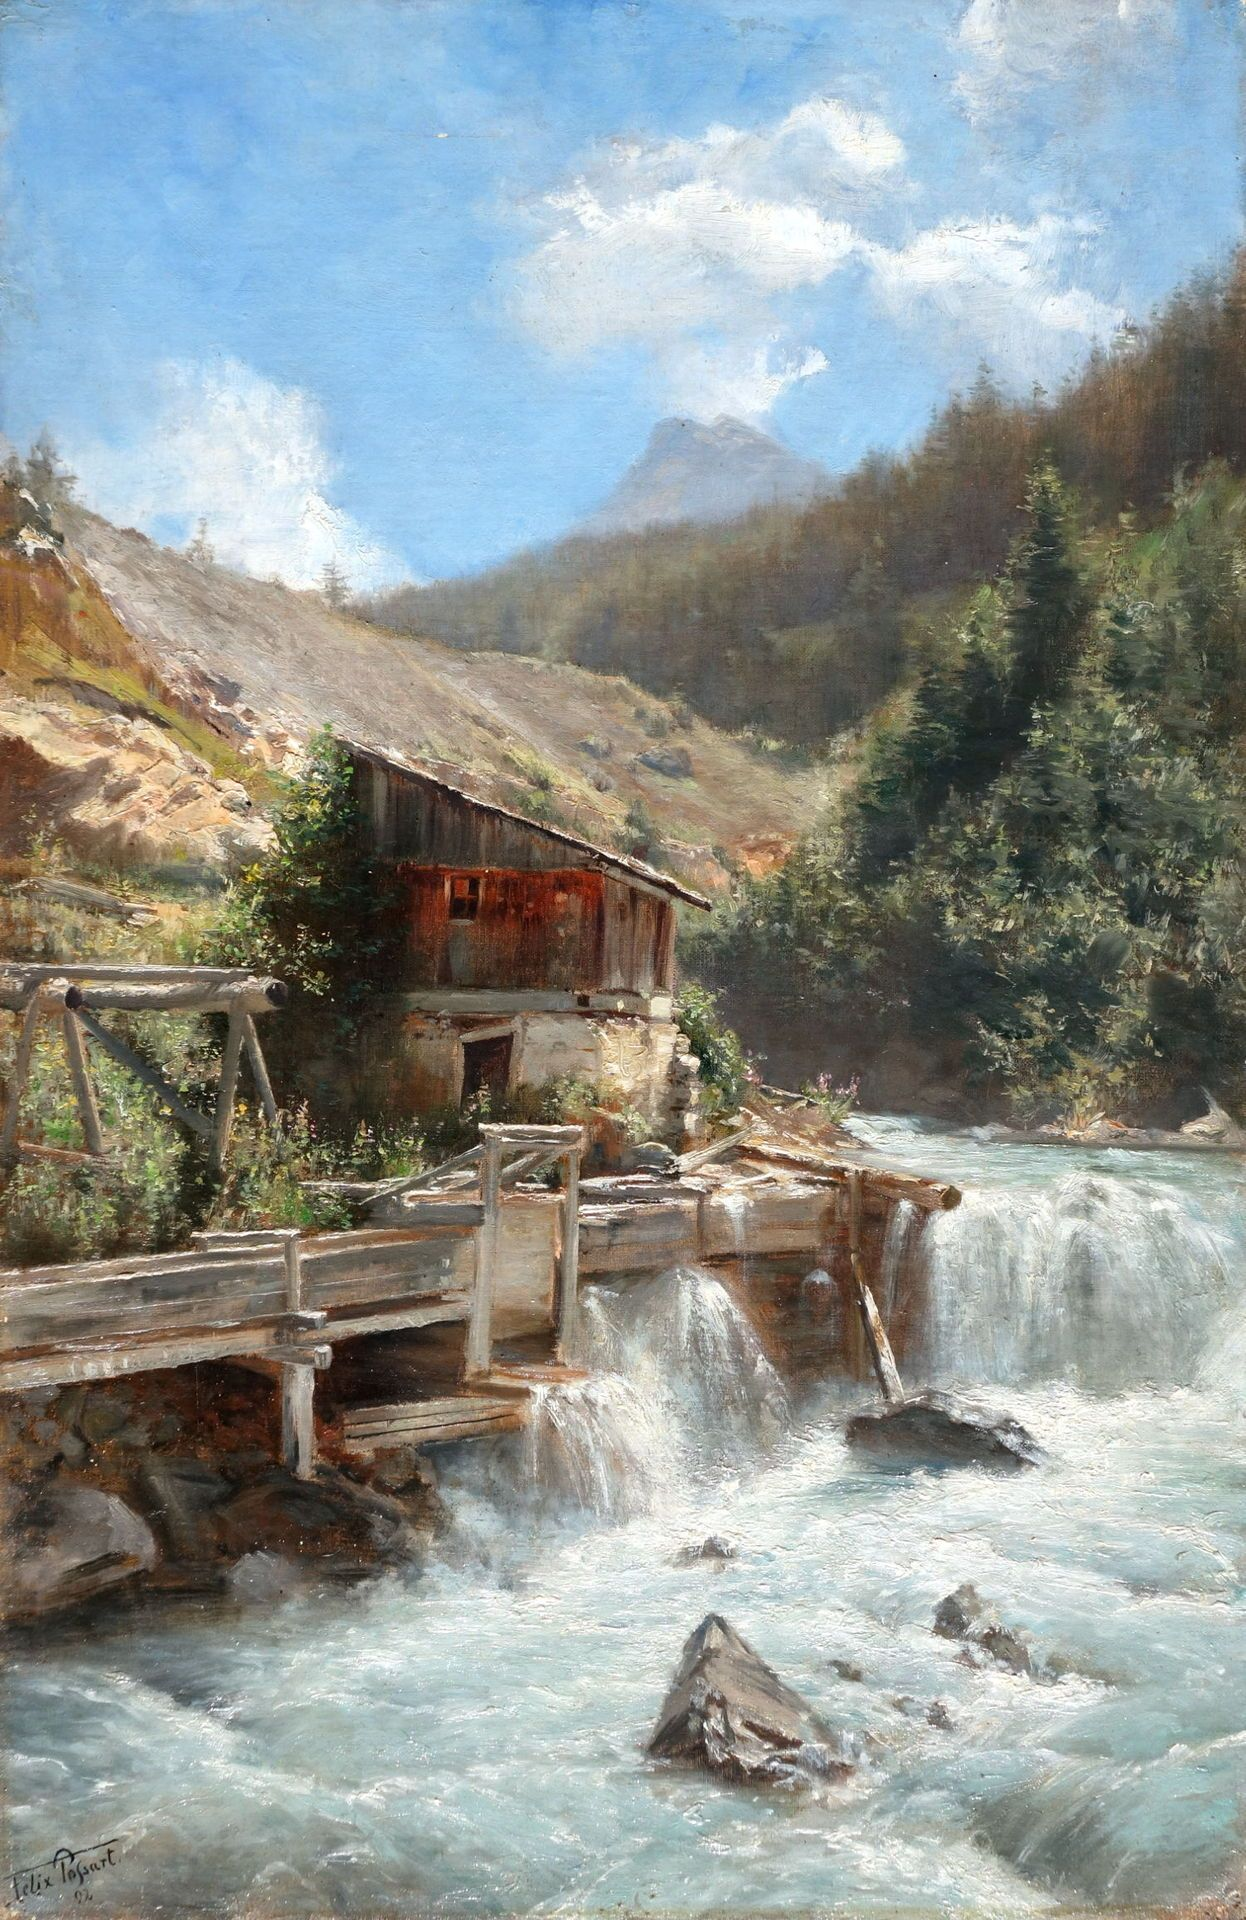 Art and Salt | PAINTINGS-Mountains and streams | Pinterest ...